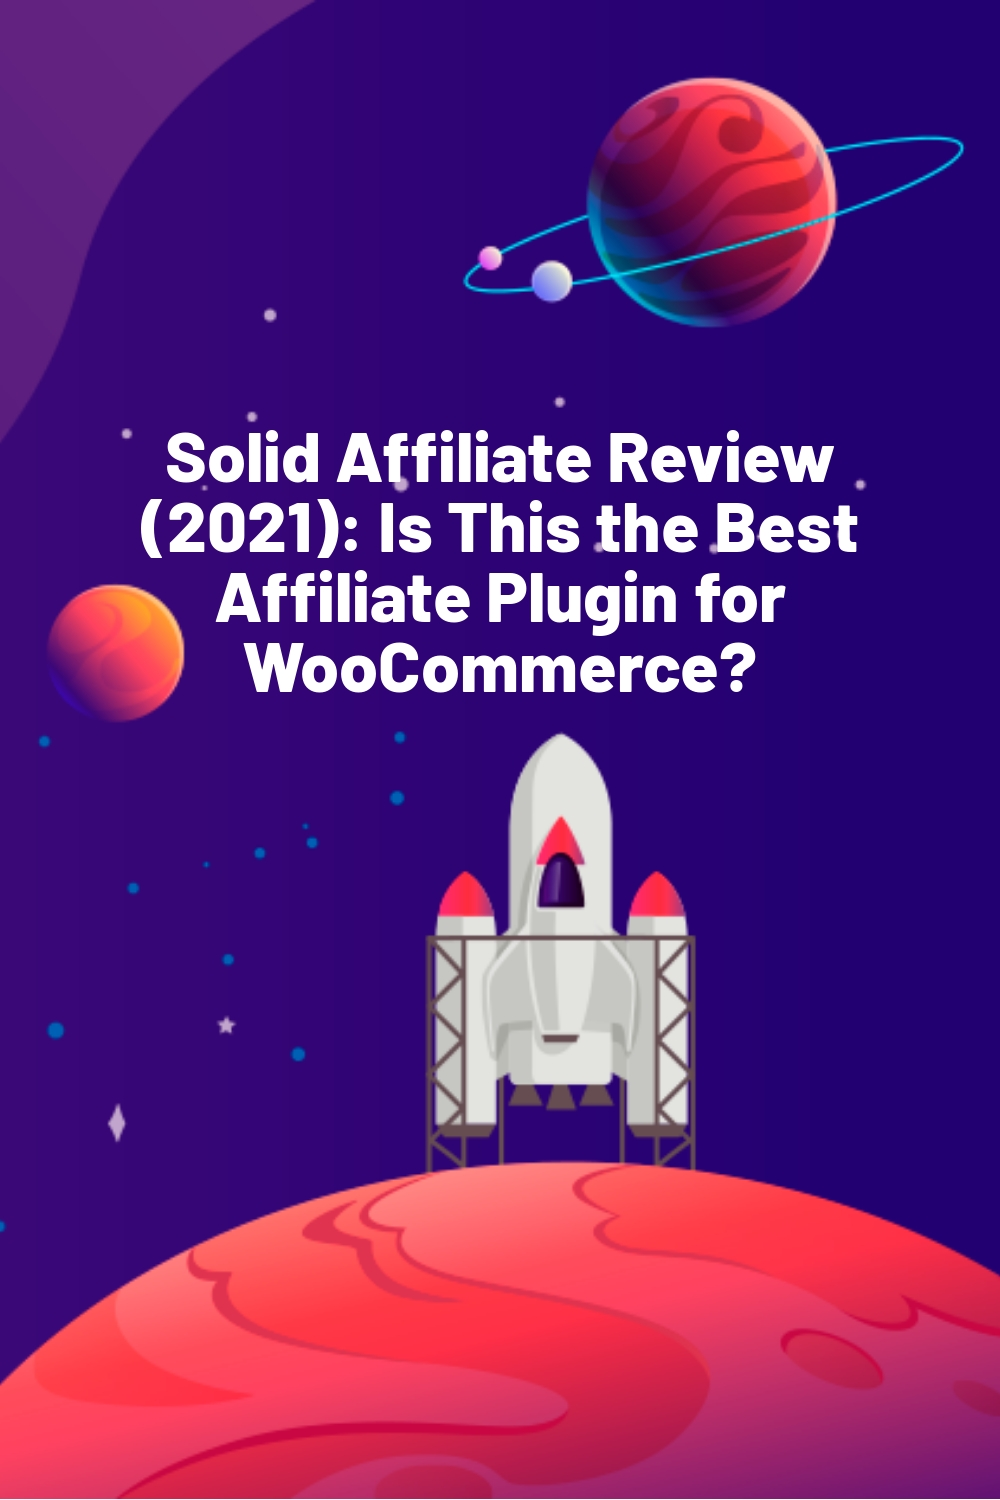 Solid Affiliate Review (2021): Is This the Best Affiliate Plugin for WooCommerce?